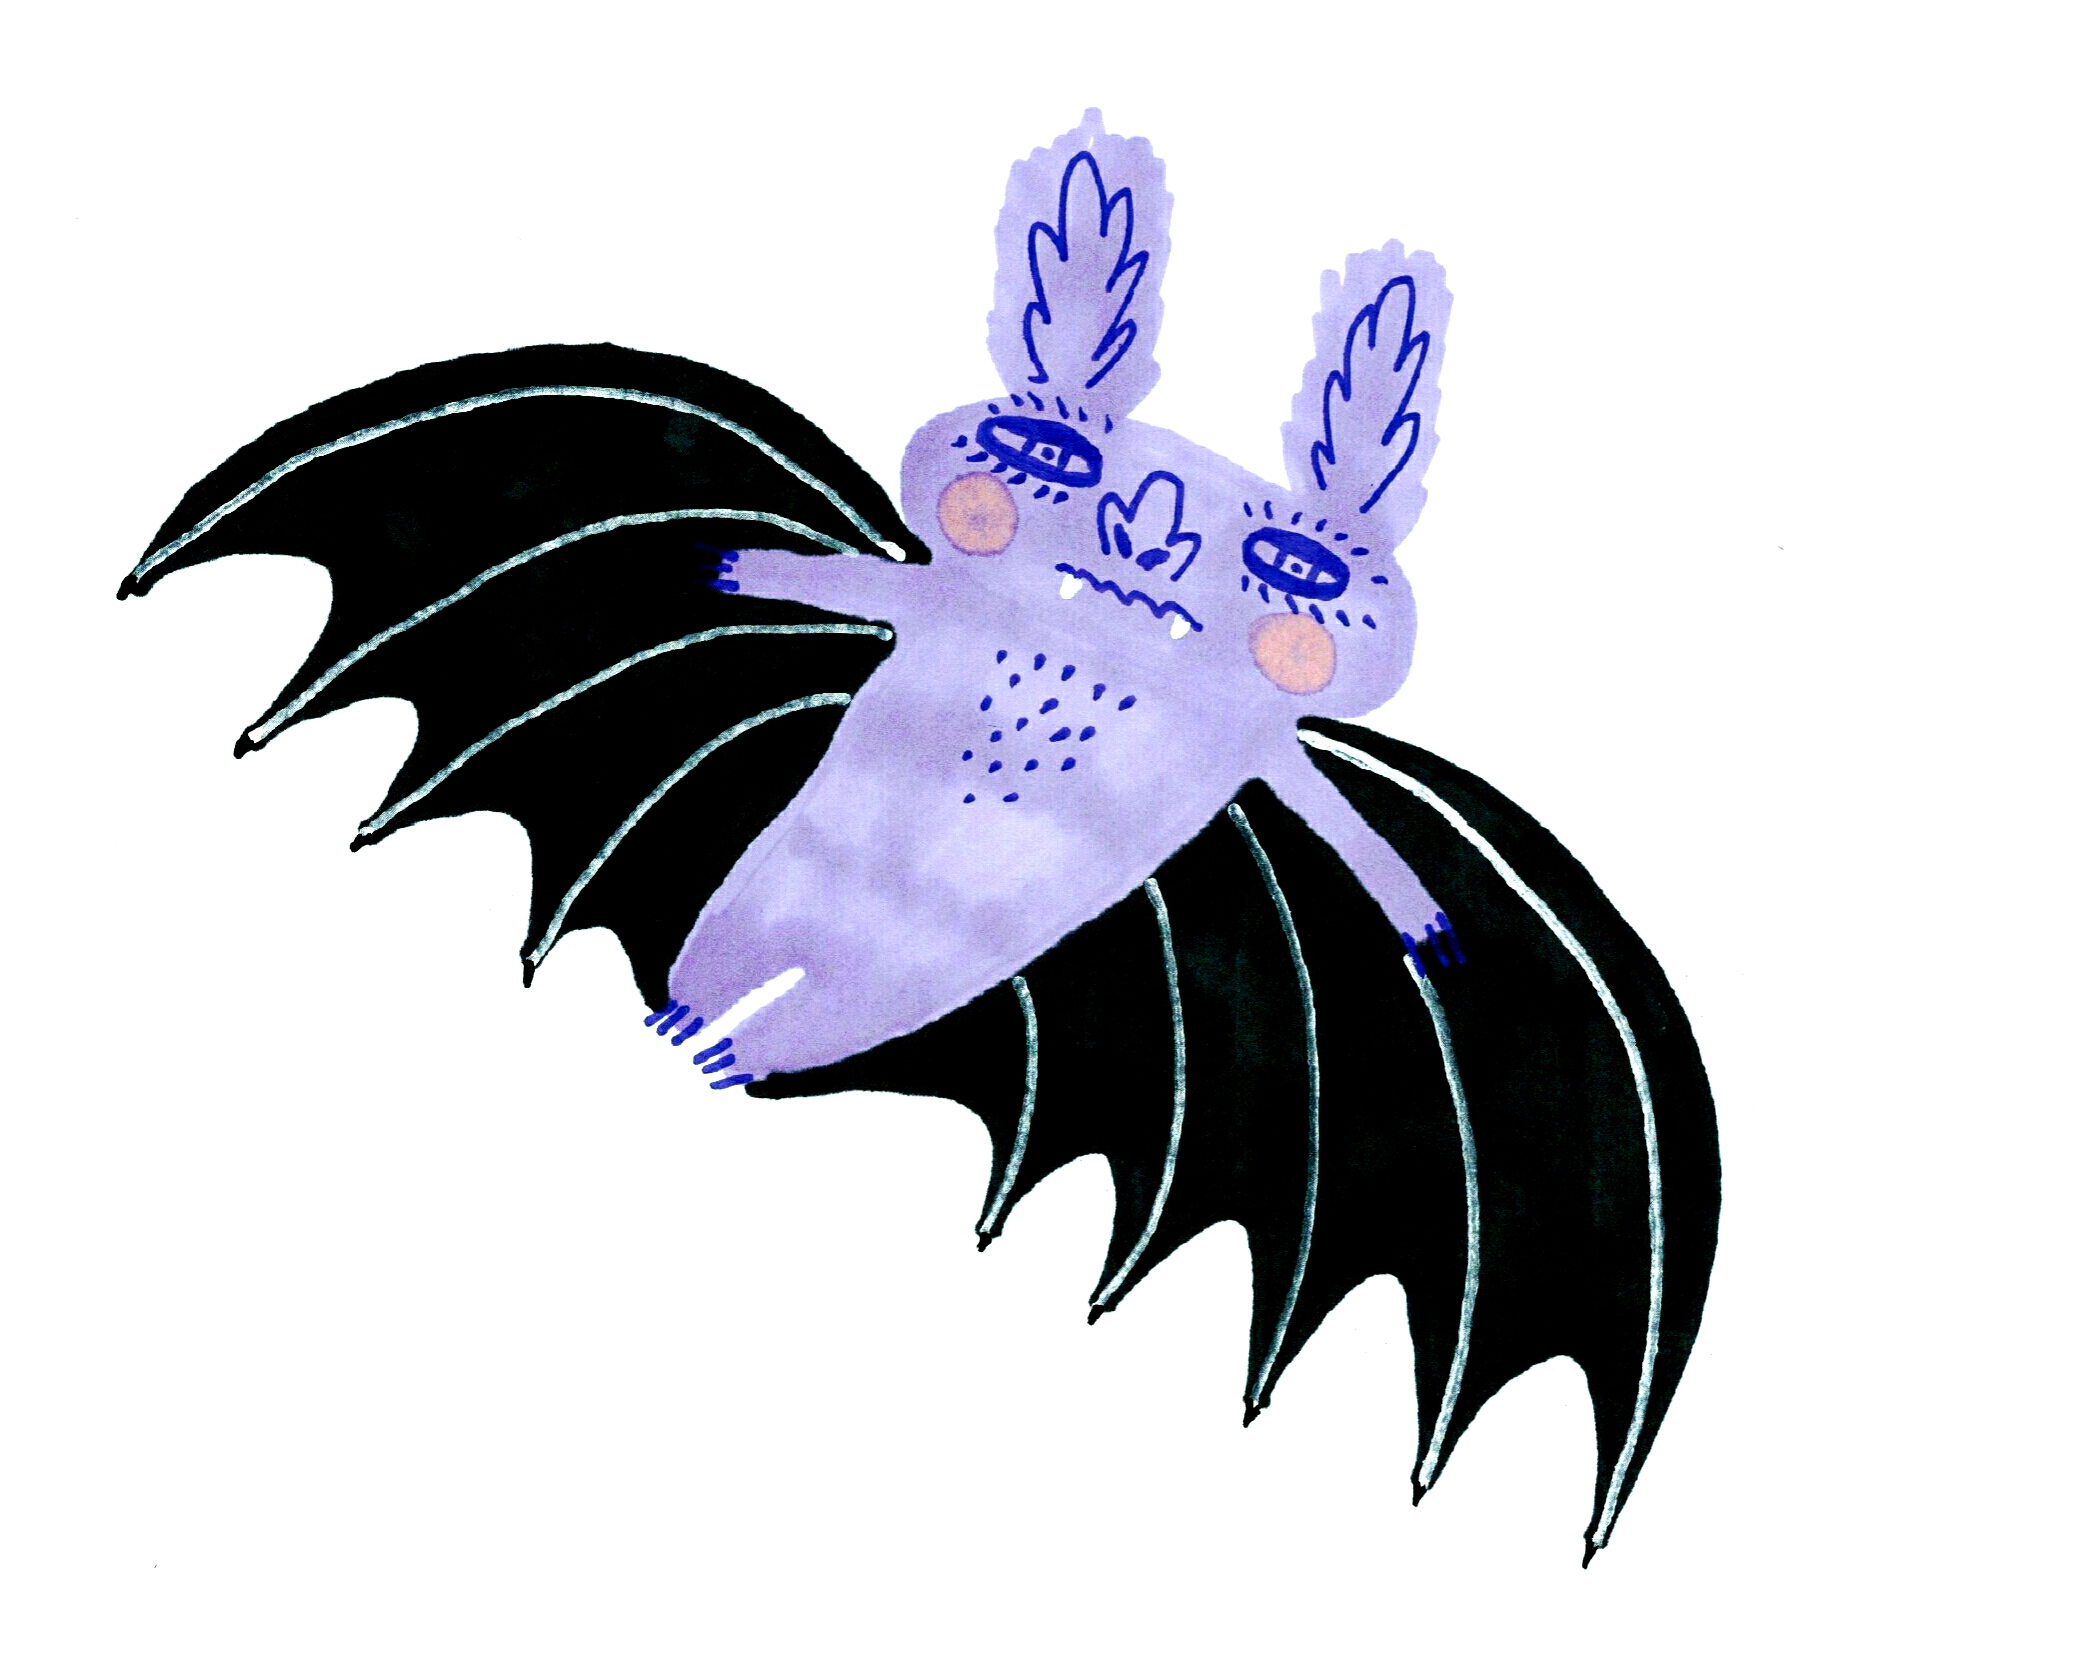 Purple Bat by Sophy Nixon 2017